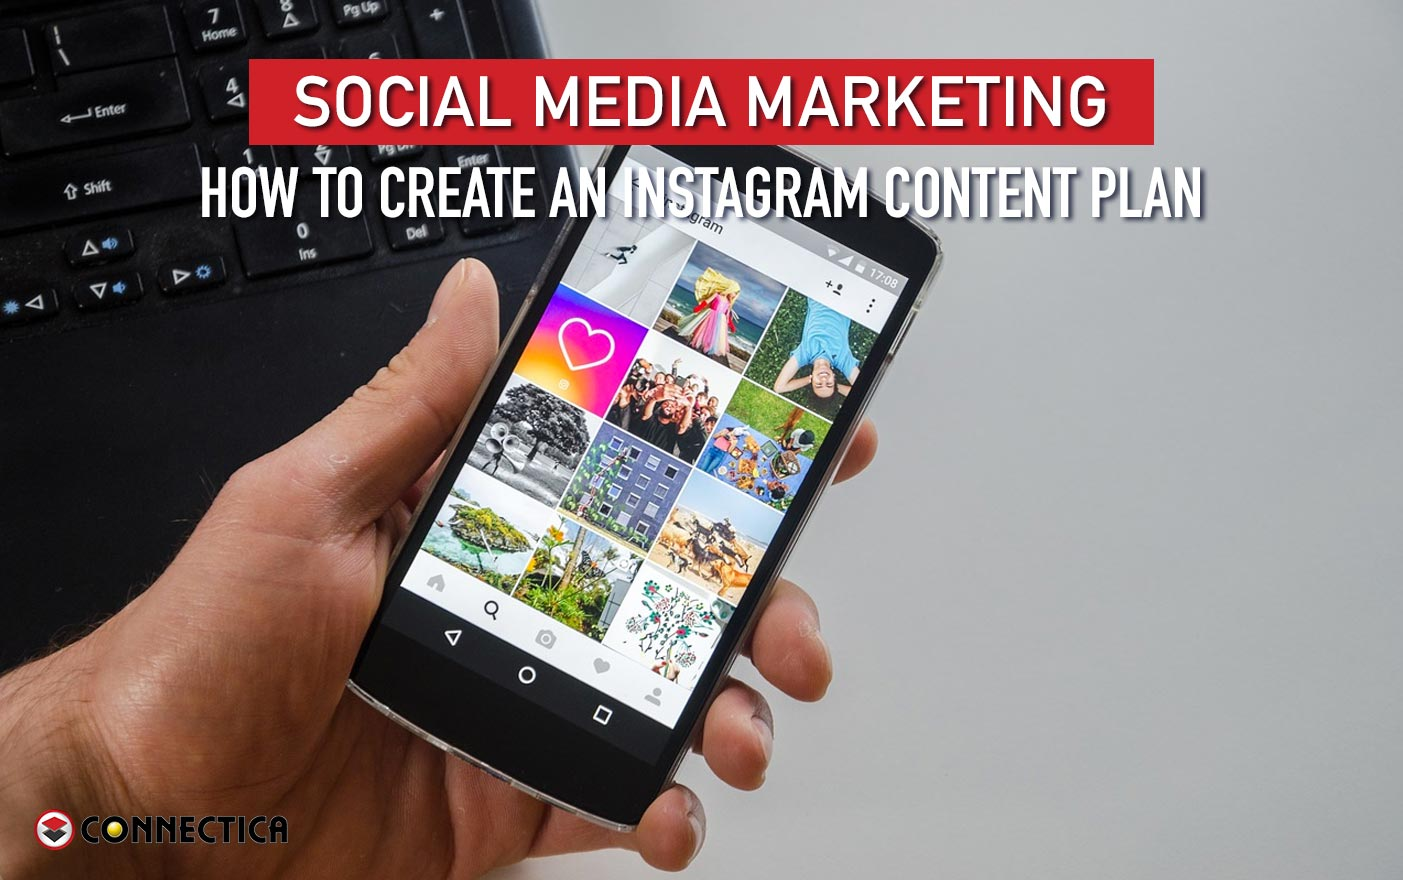 Social Media Marketing: How To Create An Instagram Content Plan